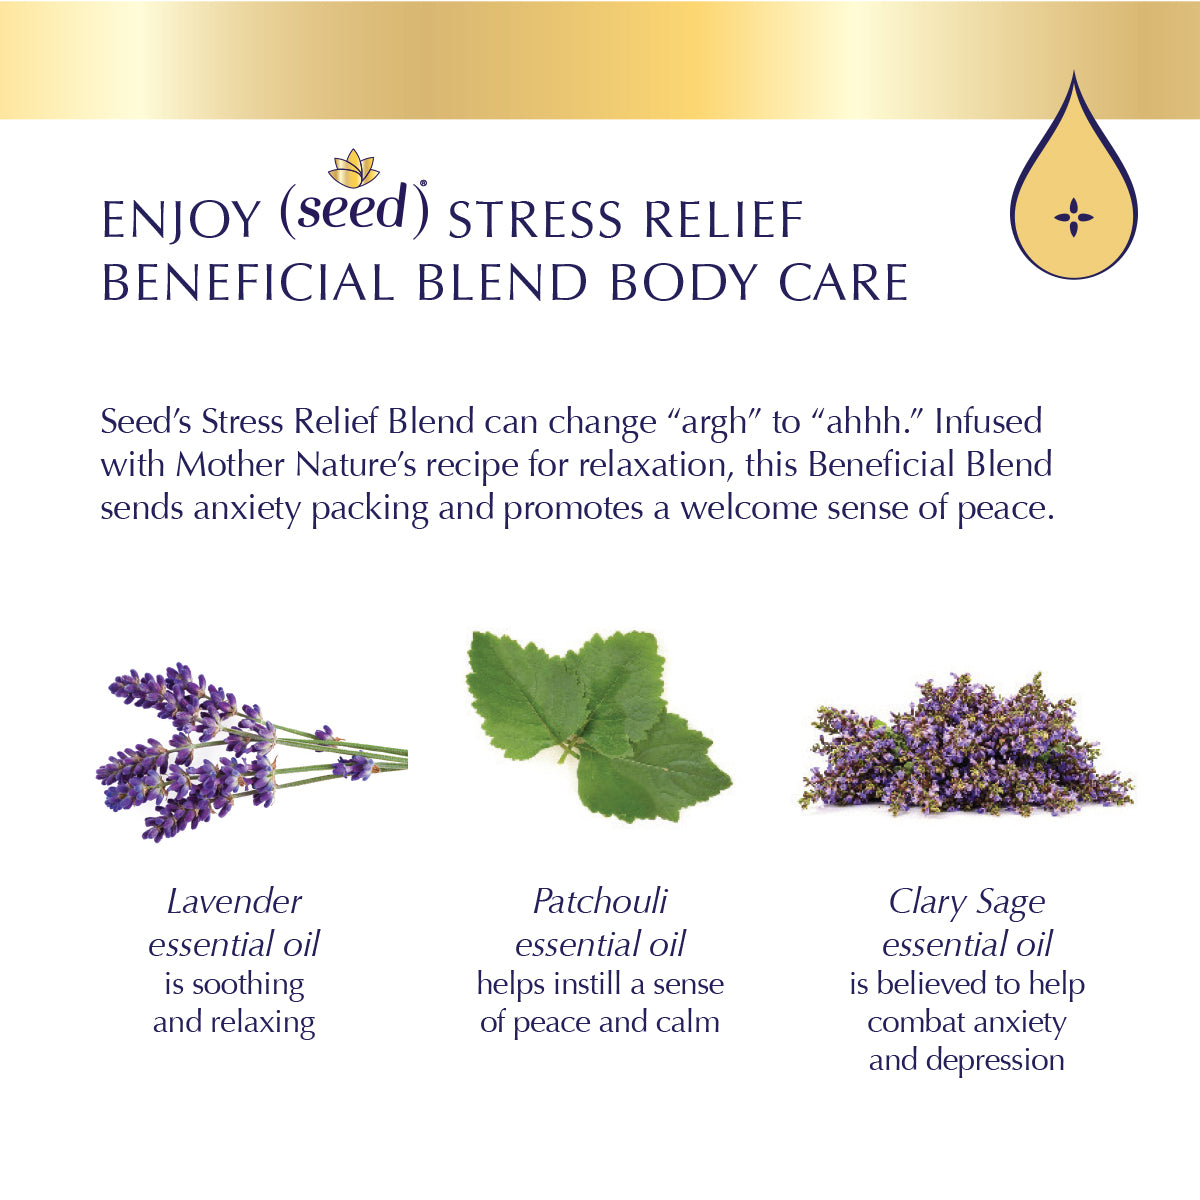 Seed Stress Relief Beneficial Blend Body Care